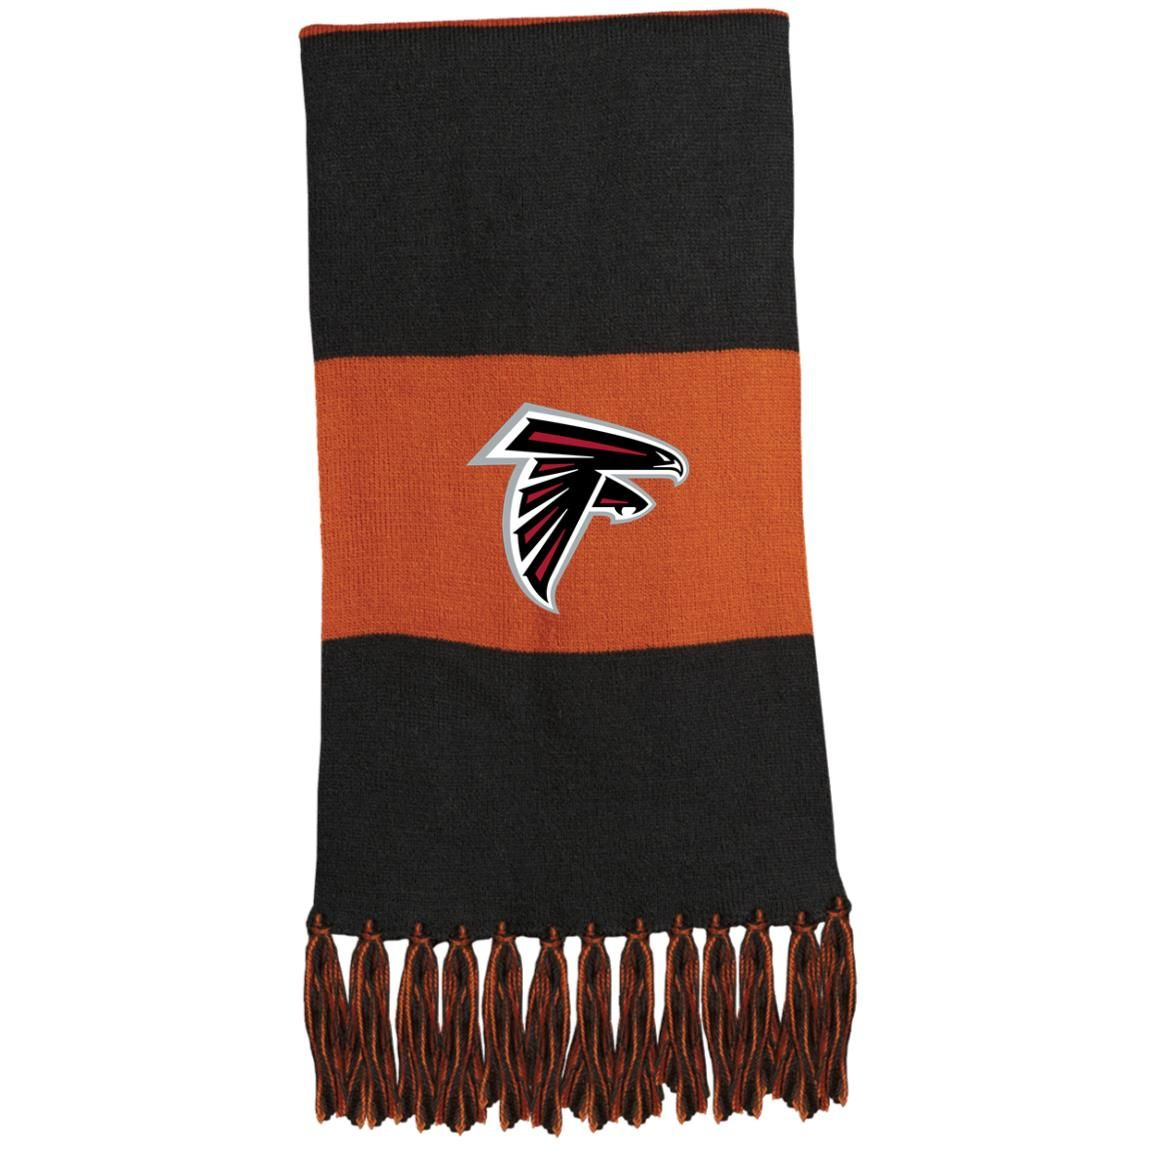 Atlanta Falcons Nfl Sport Tek Fringed Scarf Check More At Https Lapommenyc Com Product Atla Nfl Sports Nfl Atlanta Falcons Please use a supported version for the best msn experience. pinterest